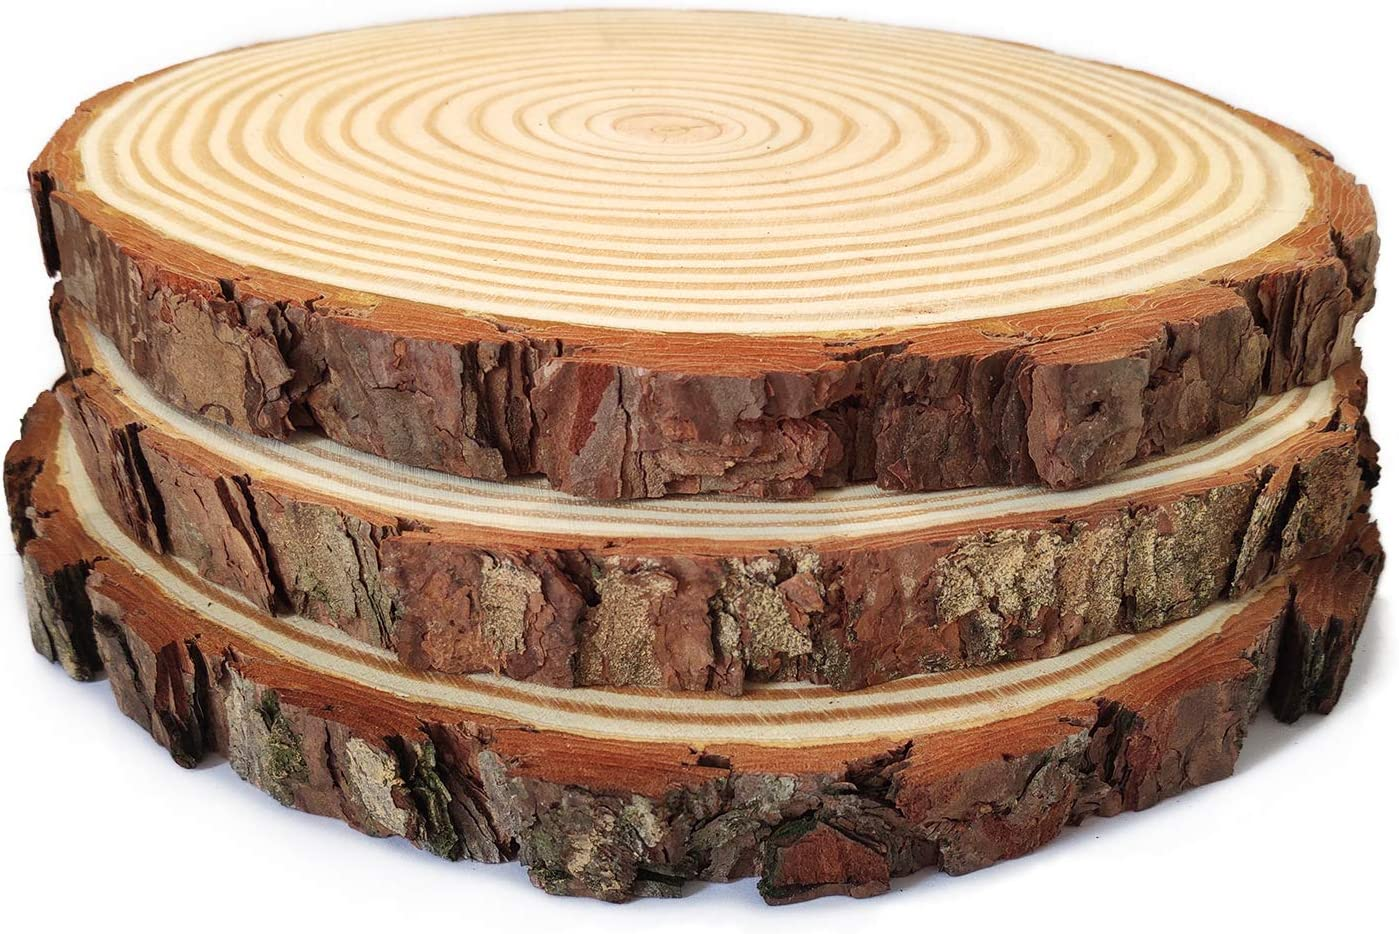 Pine Wood Slices 3 Pack, 9-10inch for Crafts Cake Stand Art Accent Table Disks Display Name Tags Sign Round